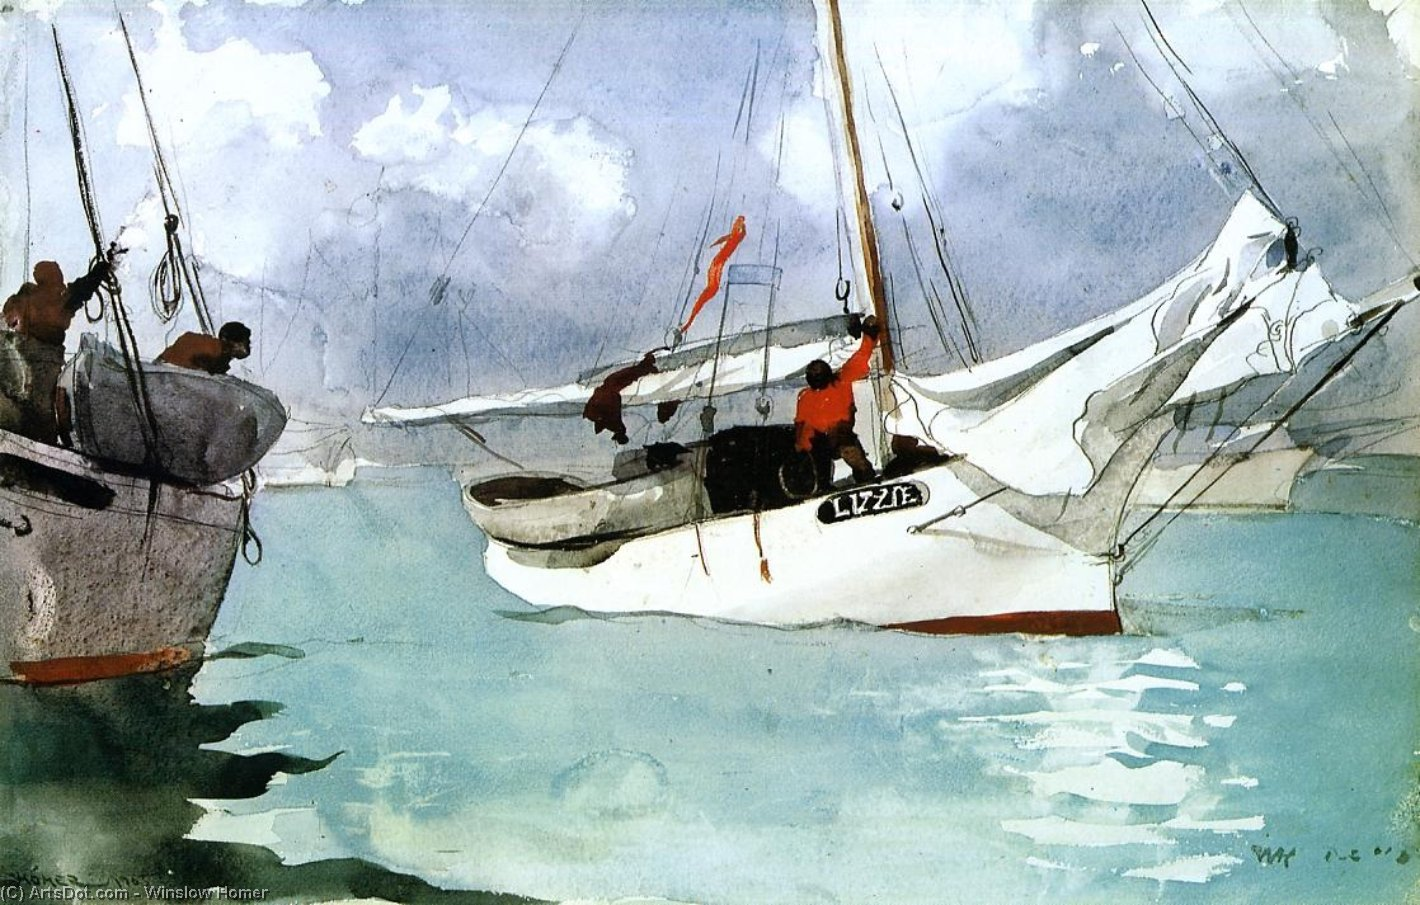 Wikioo.org - The Encyclopedia of Fine Arts - Painting, Artwork by Winslow Homer - Fishing Boats, Key West